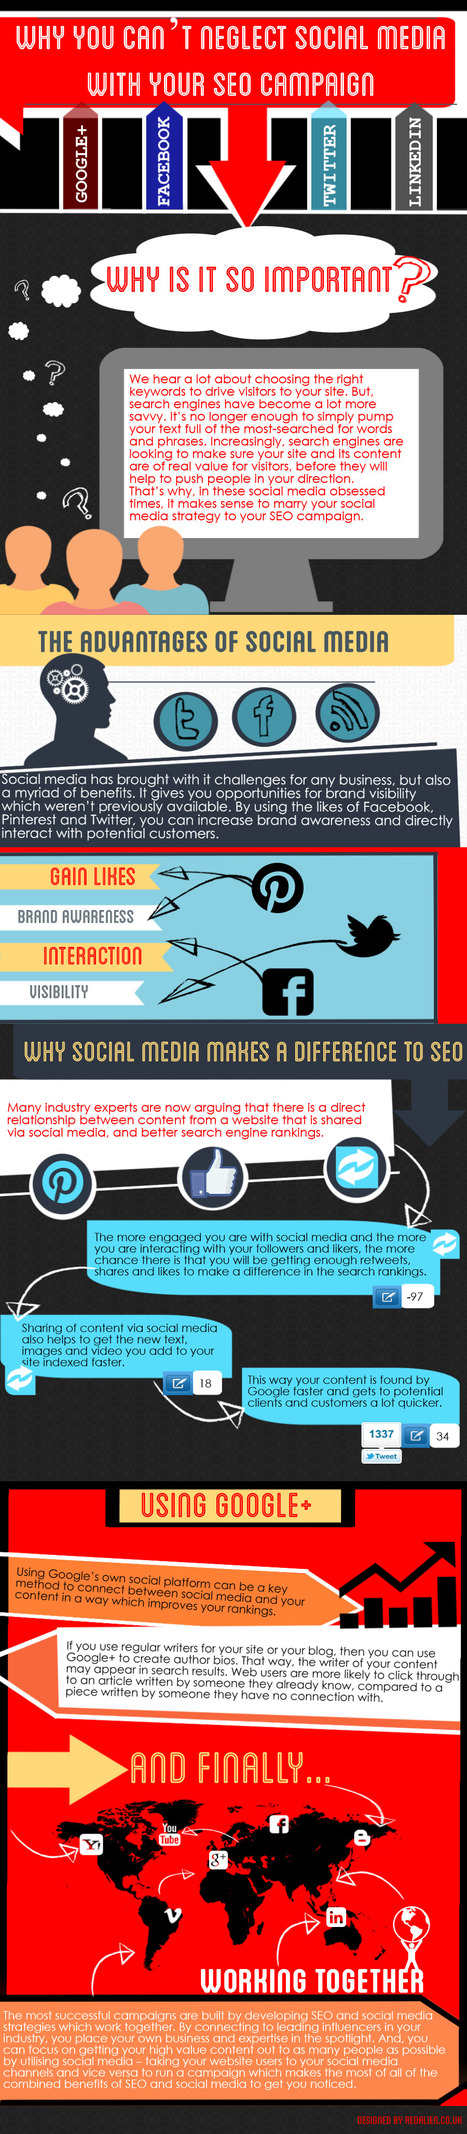 Why you can't neglect social media with SEO campaigns | Digital Brand Marketing | Scoop.it